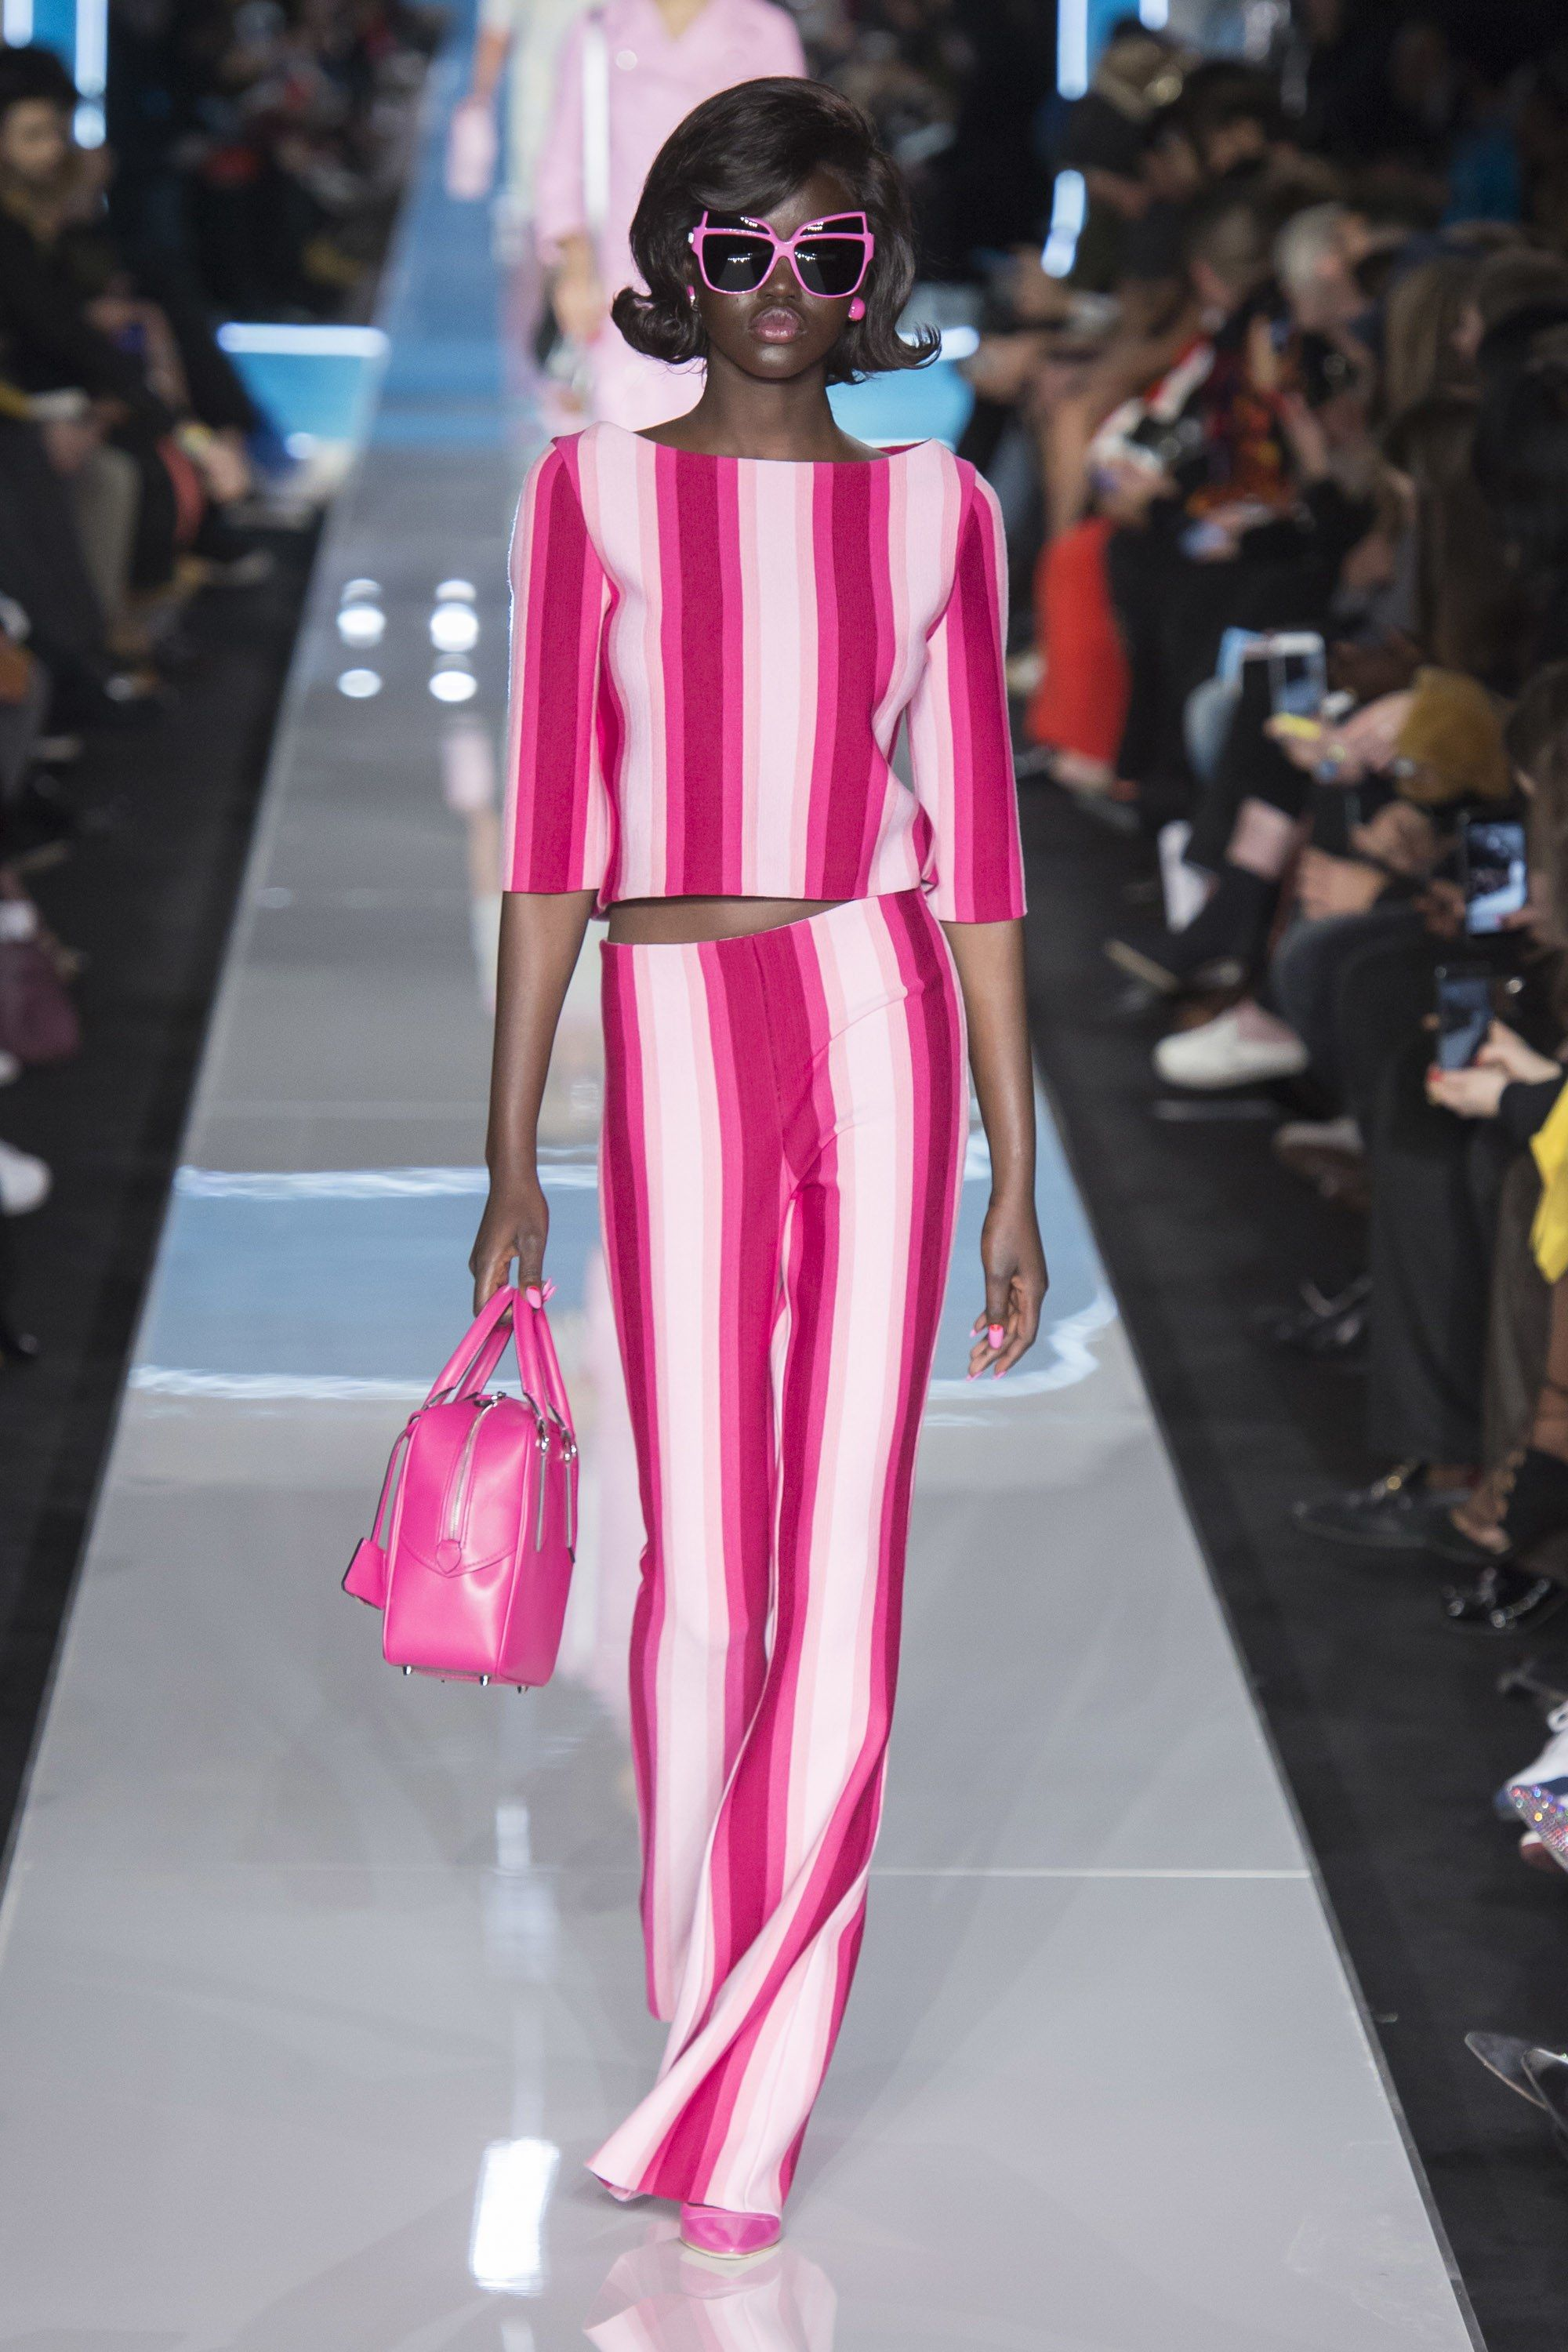 Pink horizontal stripes look fresh in this outfit combo - Moschino Fall 2018  Ready-to-Wear  milano...x 4b5c5b585